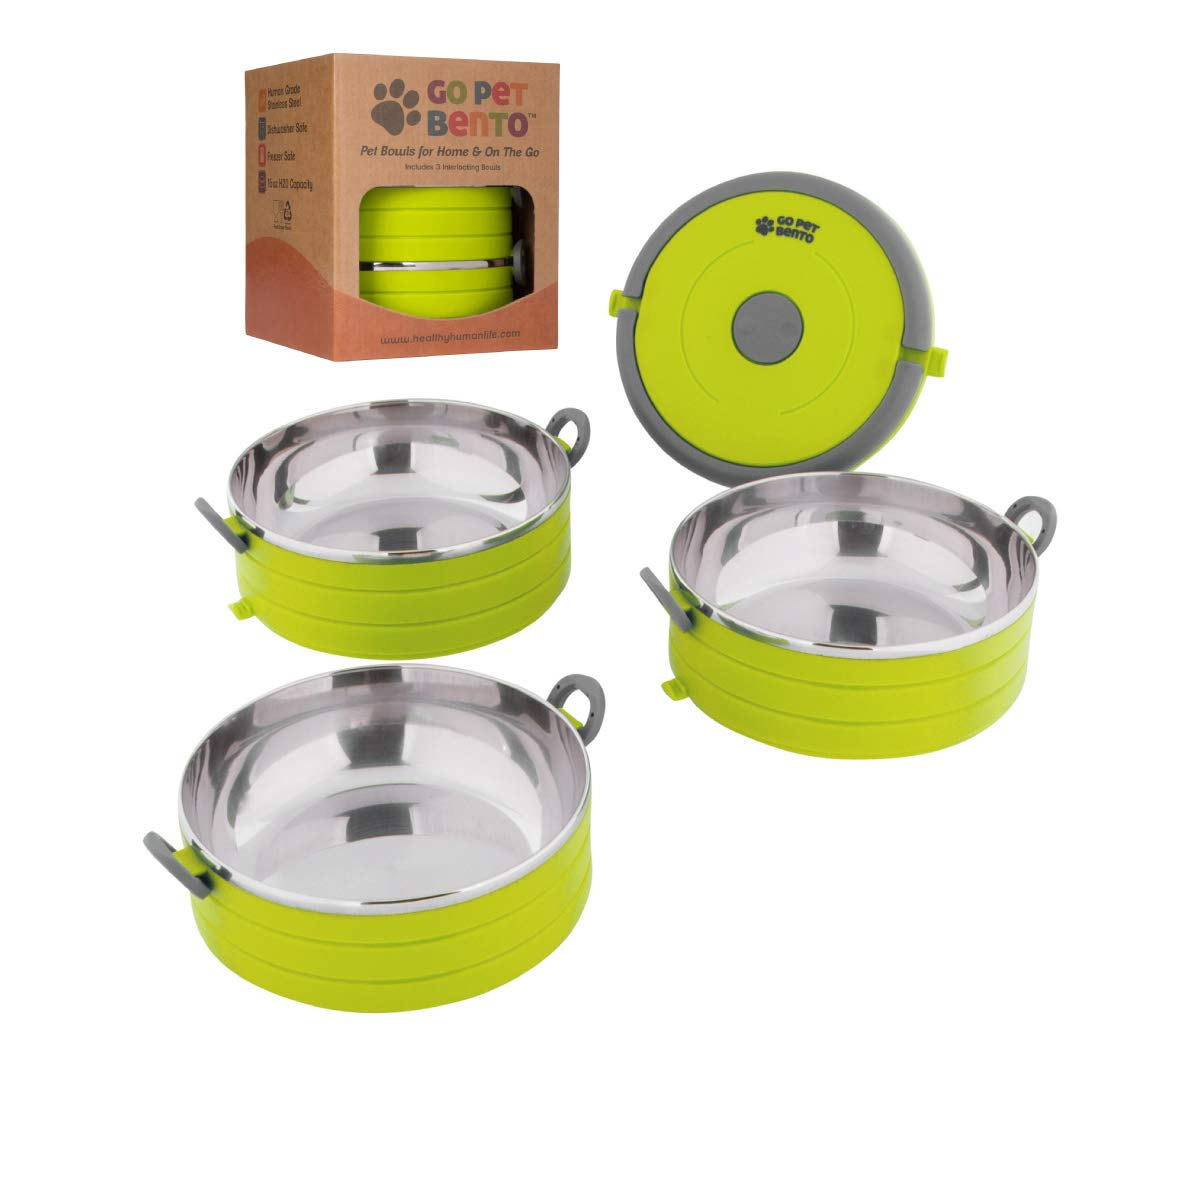 Healthy Human Portable Dog & Pet Travel Bowls with Lid - Human Grade Stainless Steel - Ideal for Food & Water - Green - 3 Bowl Set by Healthy Human